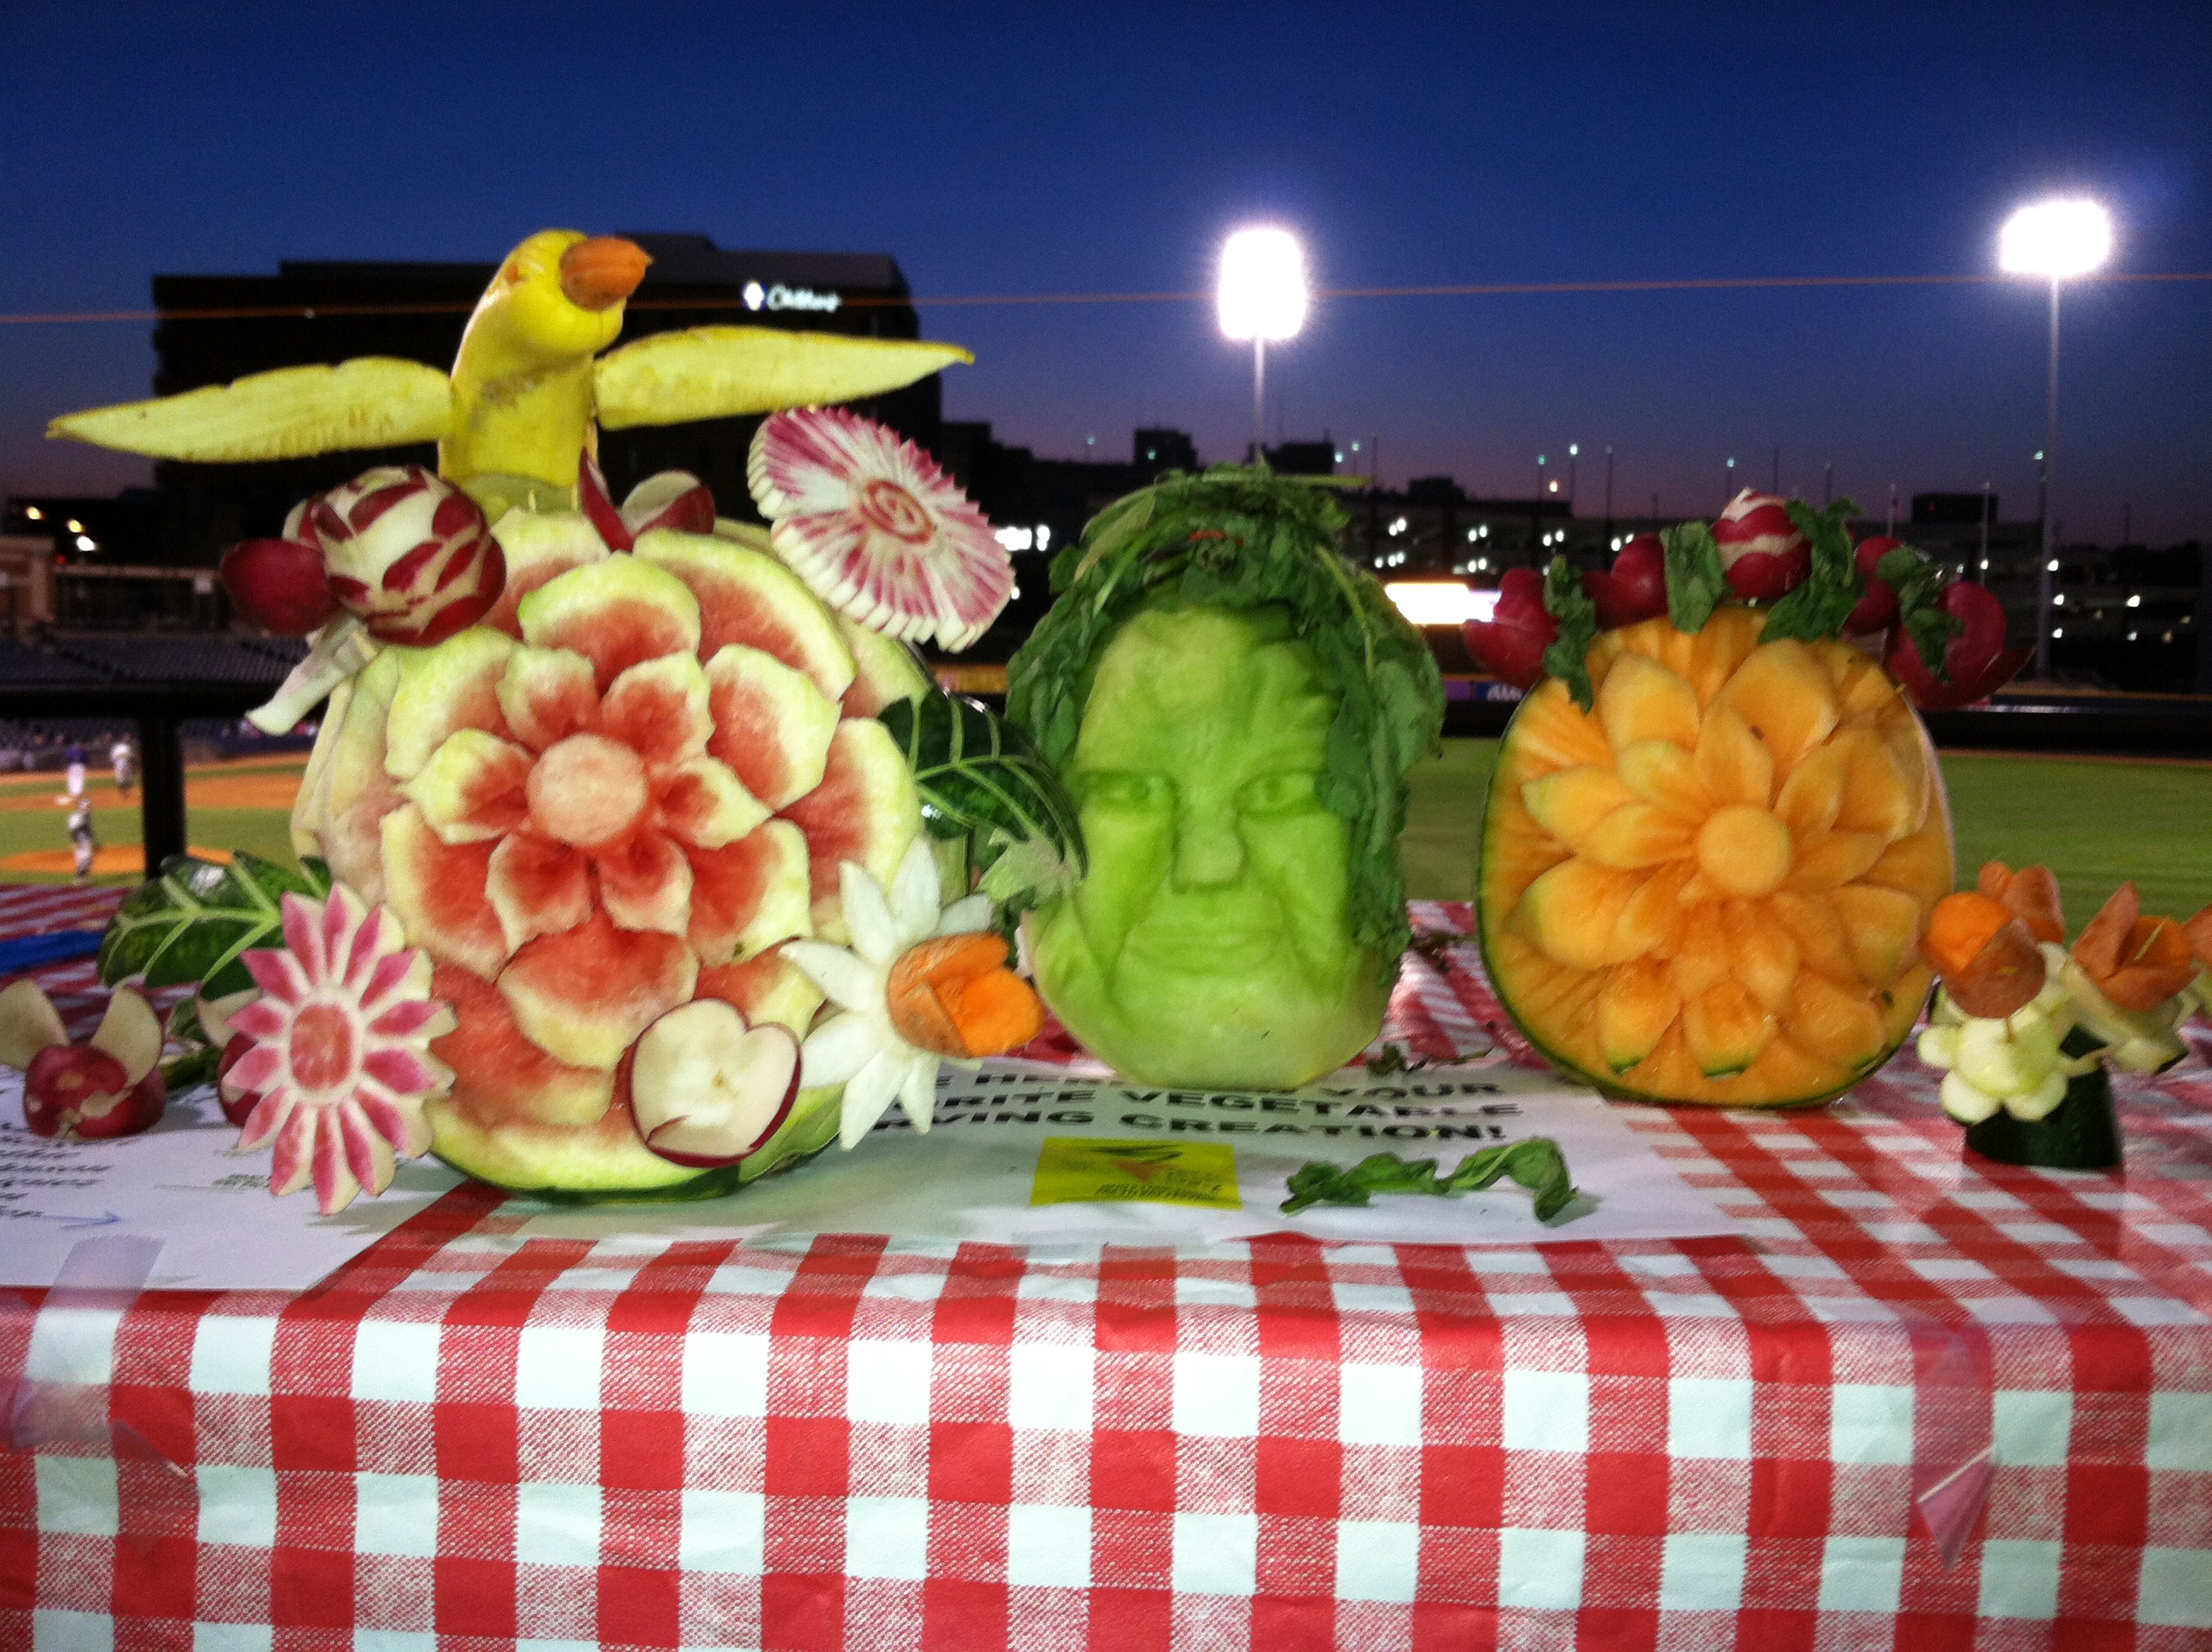 Vegetable carving for competition - Veggie Carving Runner Up